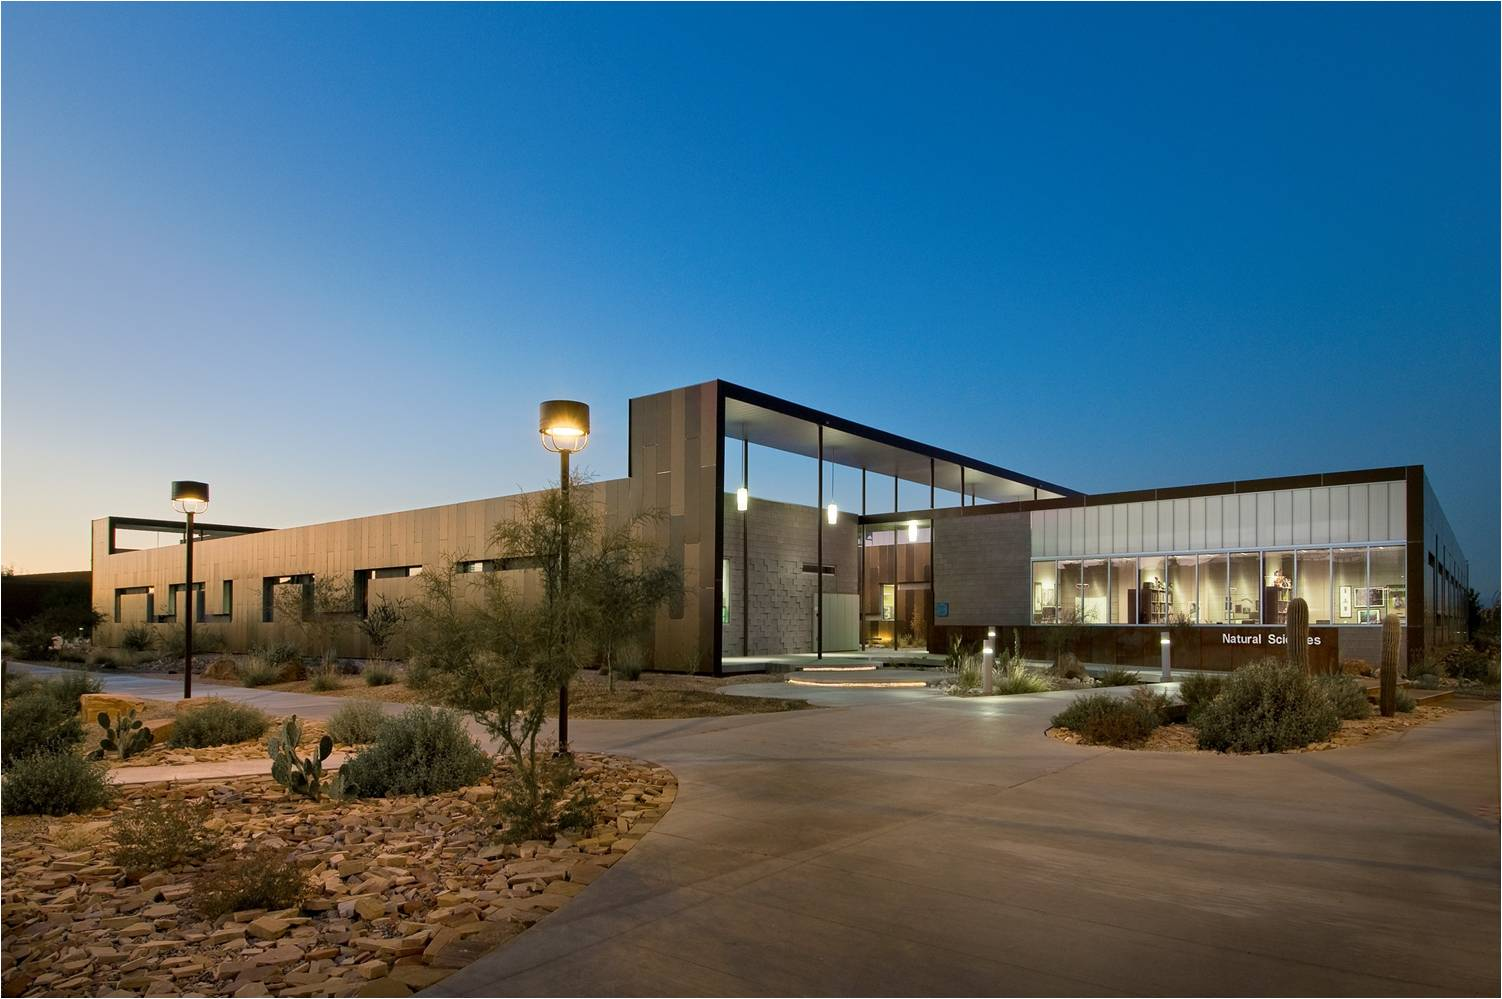 NATURAL SCIENCES BUILDING, SCOTTSDALE COMMUNITY CENTER